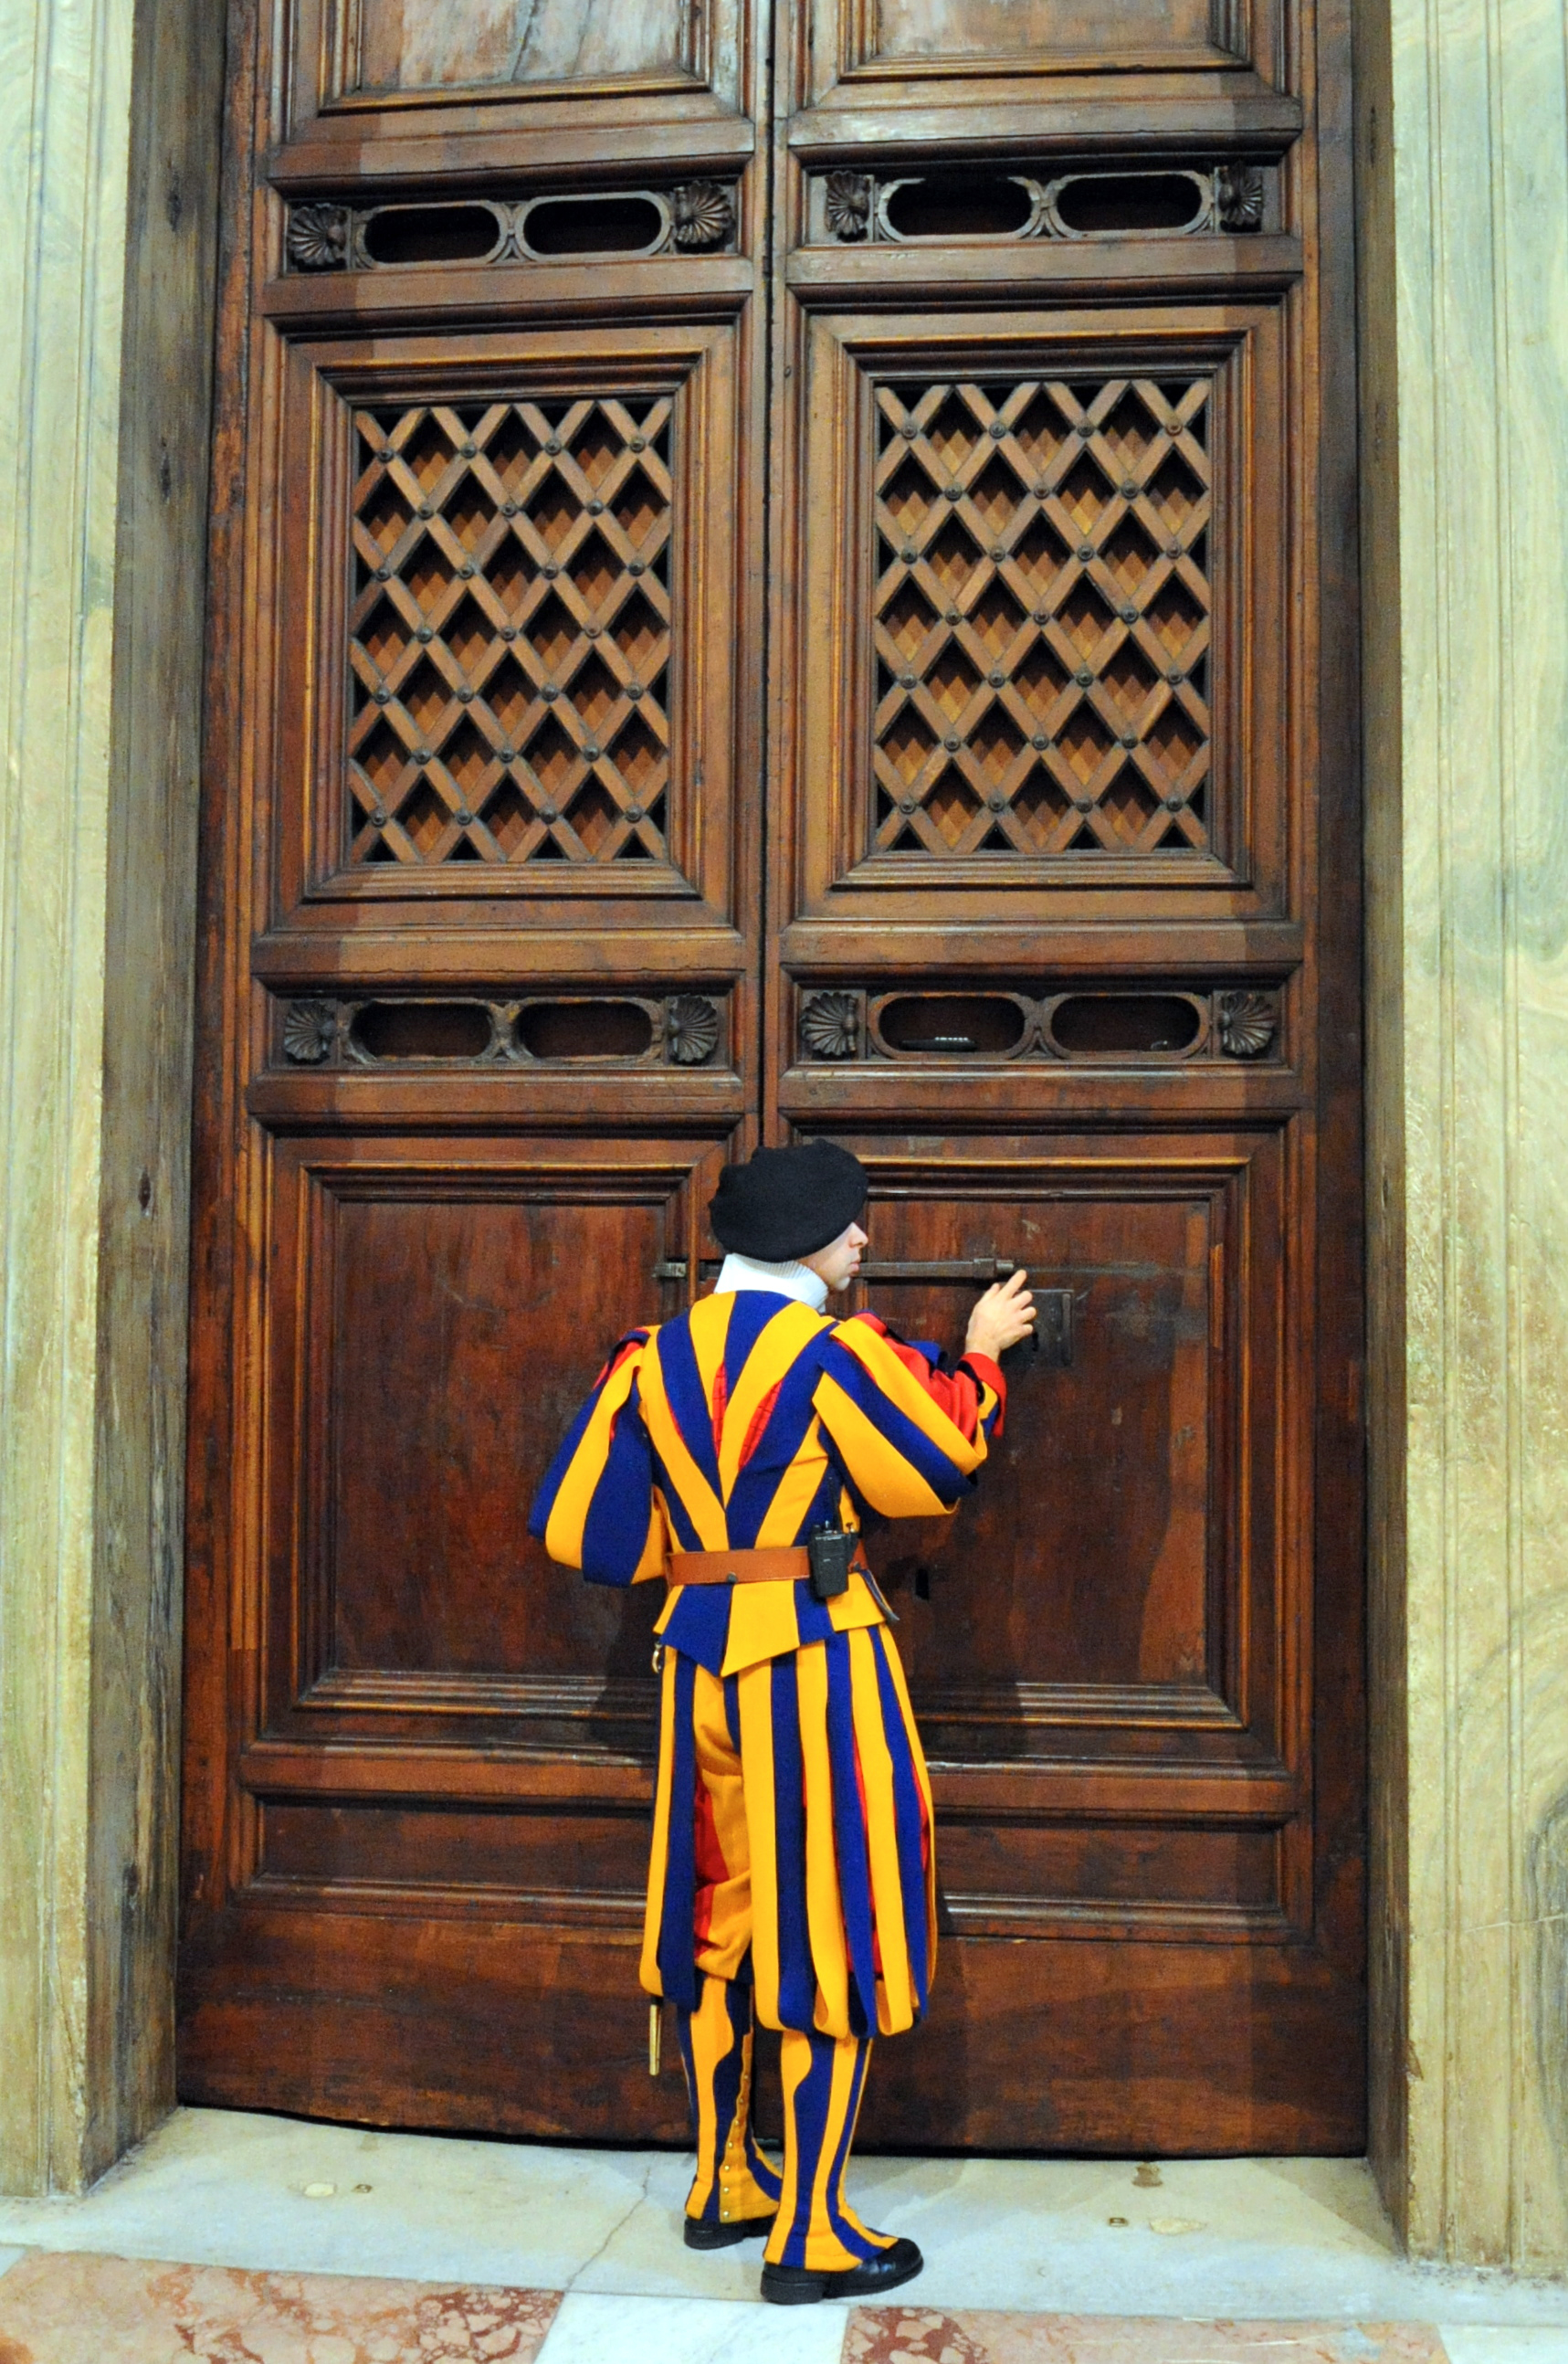 FileA Swiss Guard Unlocks the Door Outside of the Sistine Chapel for Secretary Kerry & File:A Swiss Guard Unlocks the Door Outside of the Sistine Chapel ...